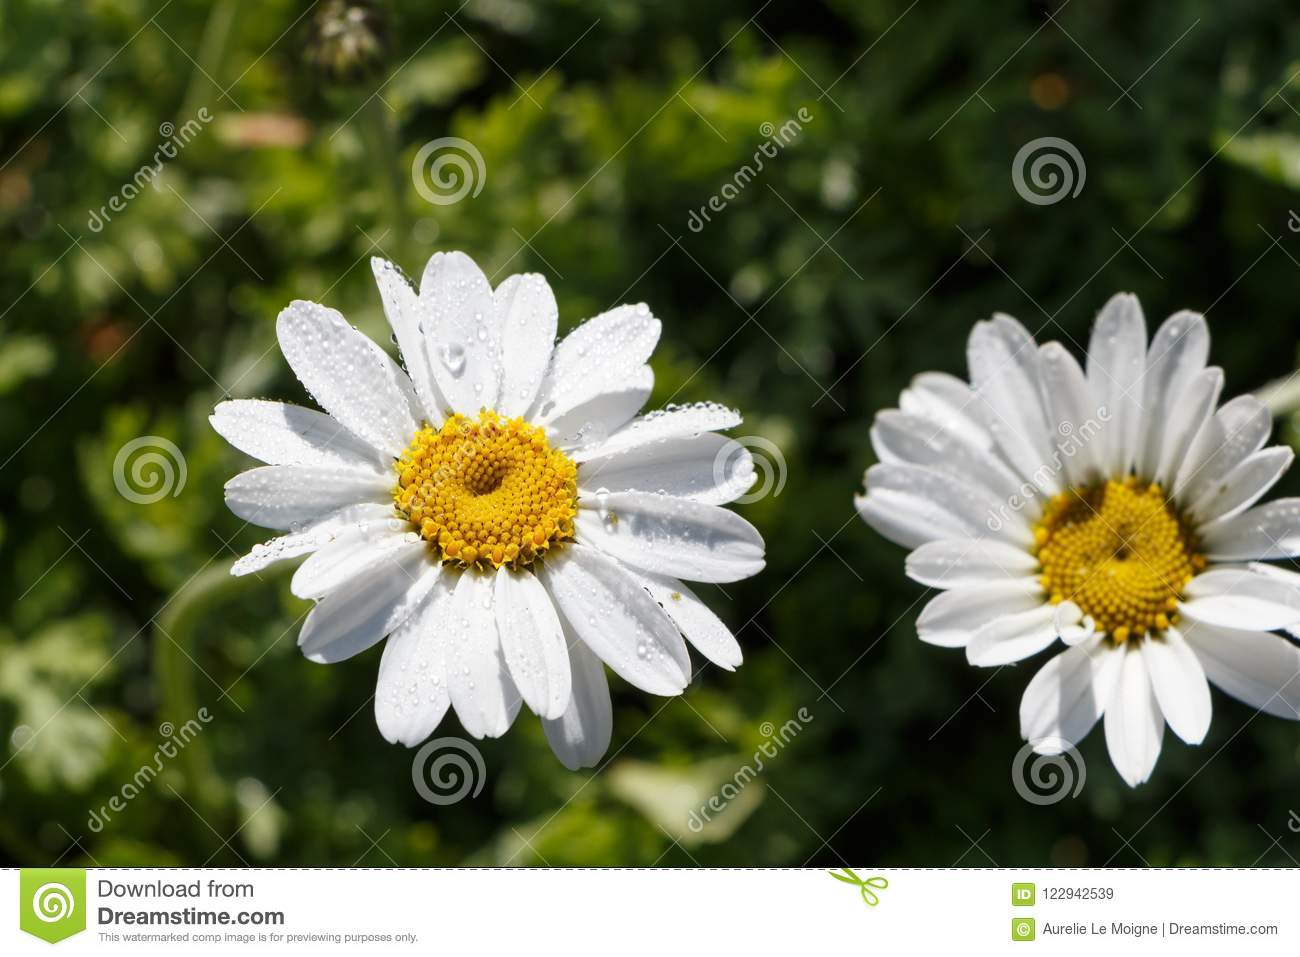 White flower of oxeye daisy stock image image of stem flower download white flower of oxeye daisy stock image image of stem flower 122942539 mightylinksfo